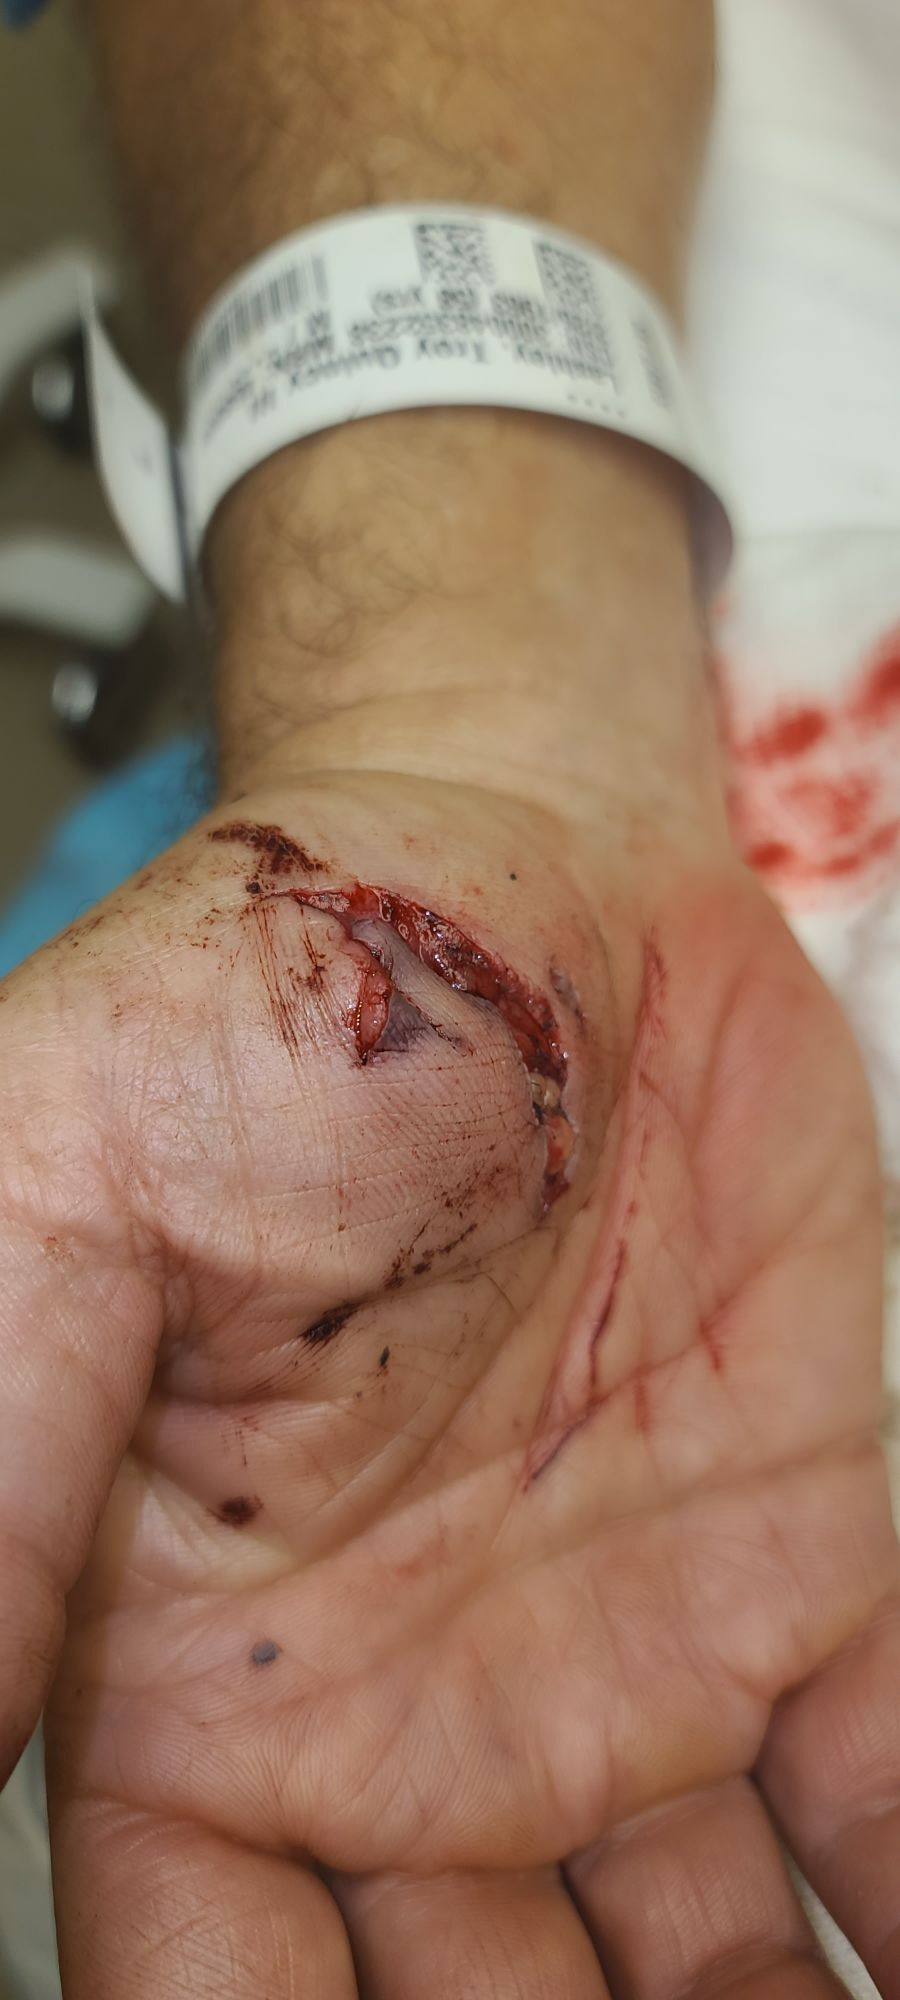 Troy's hand injury